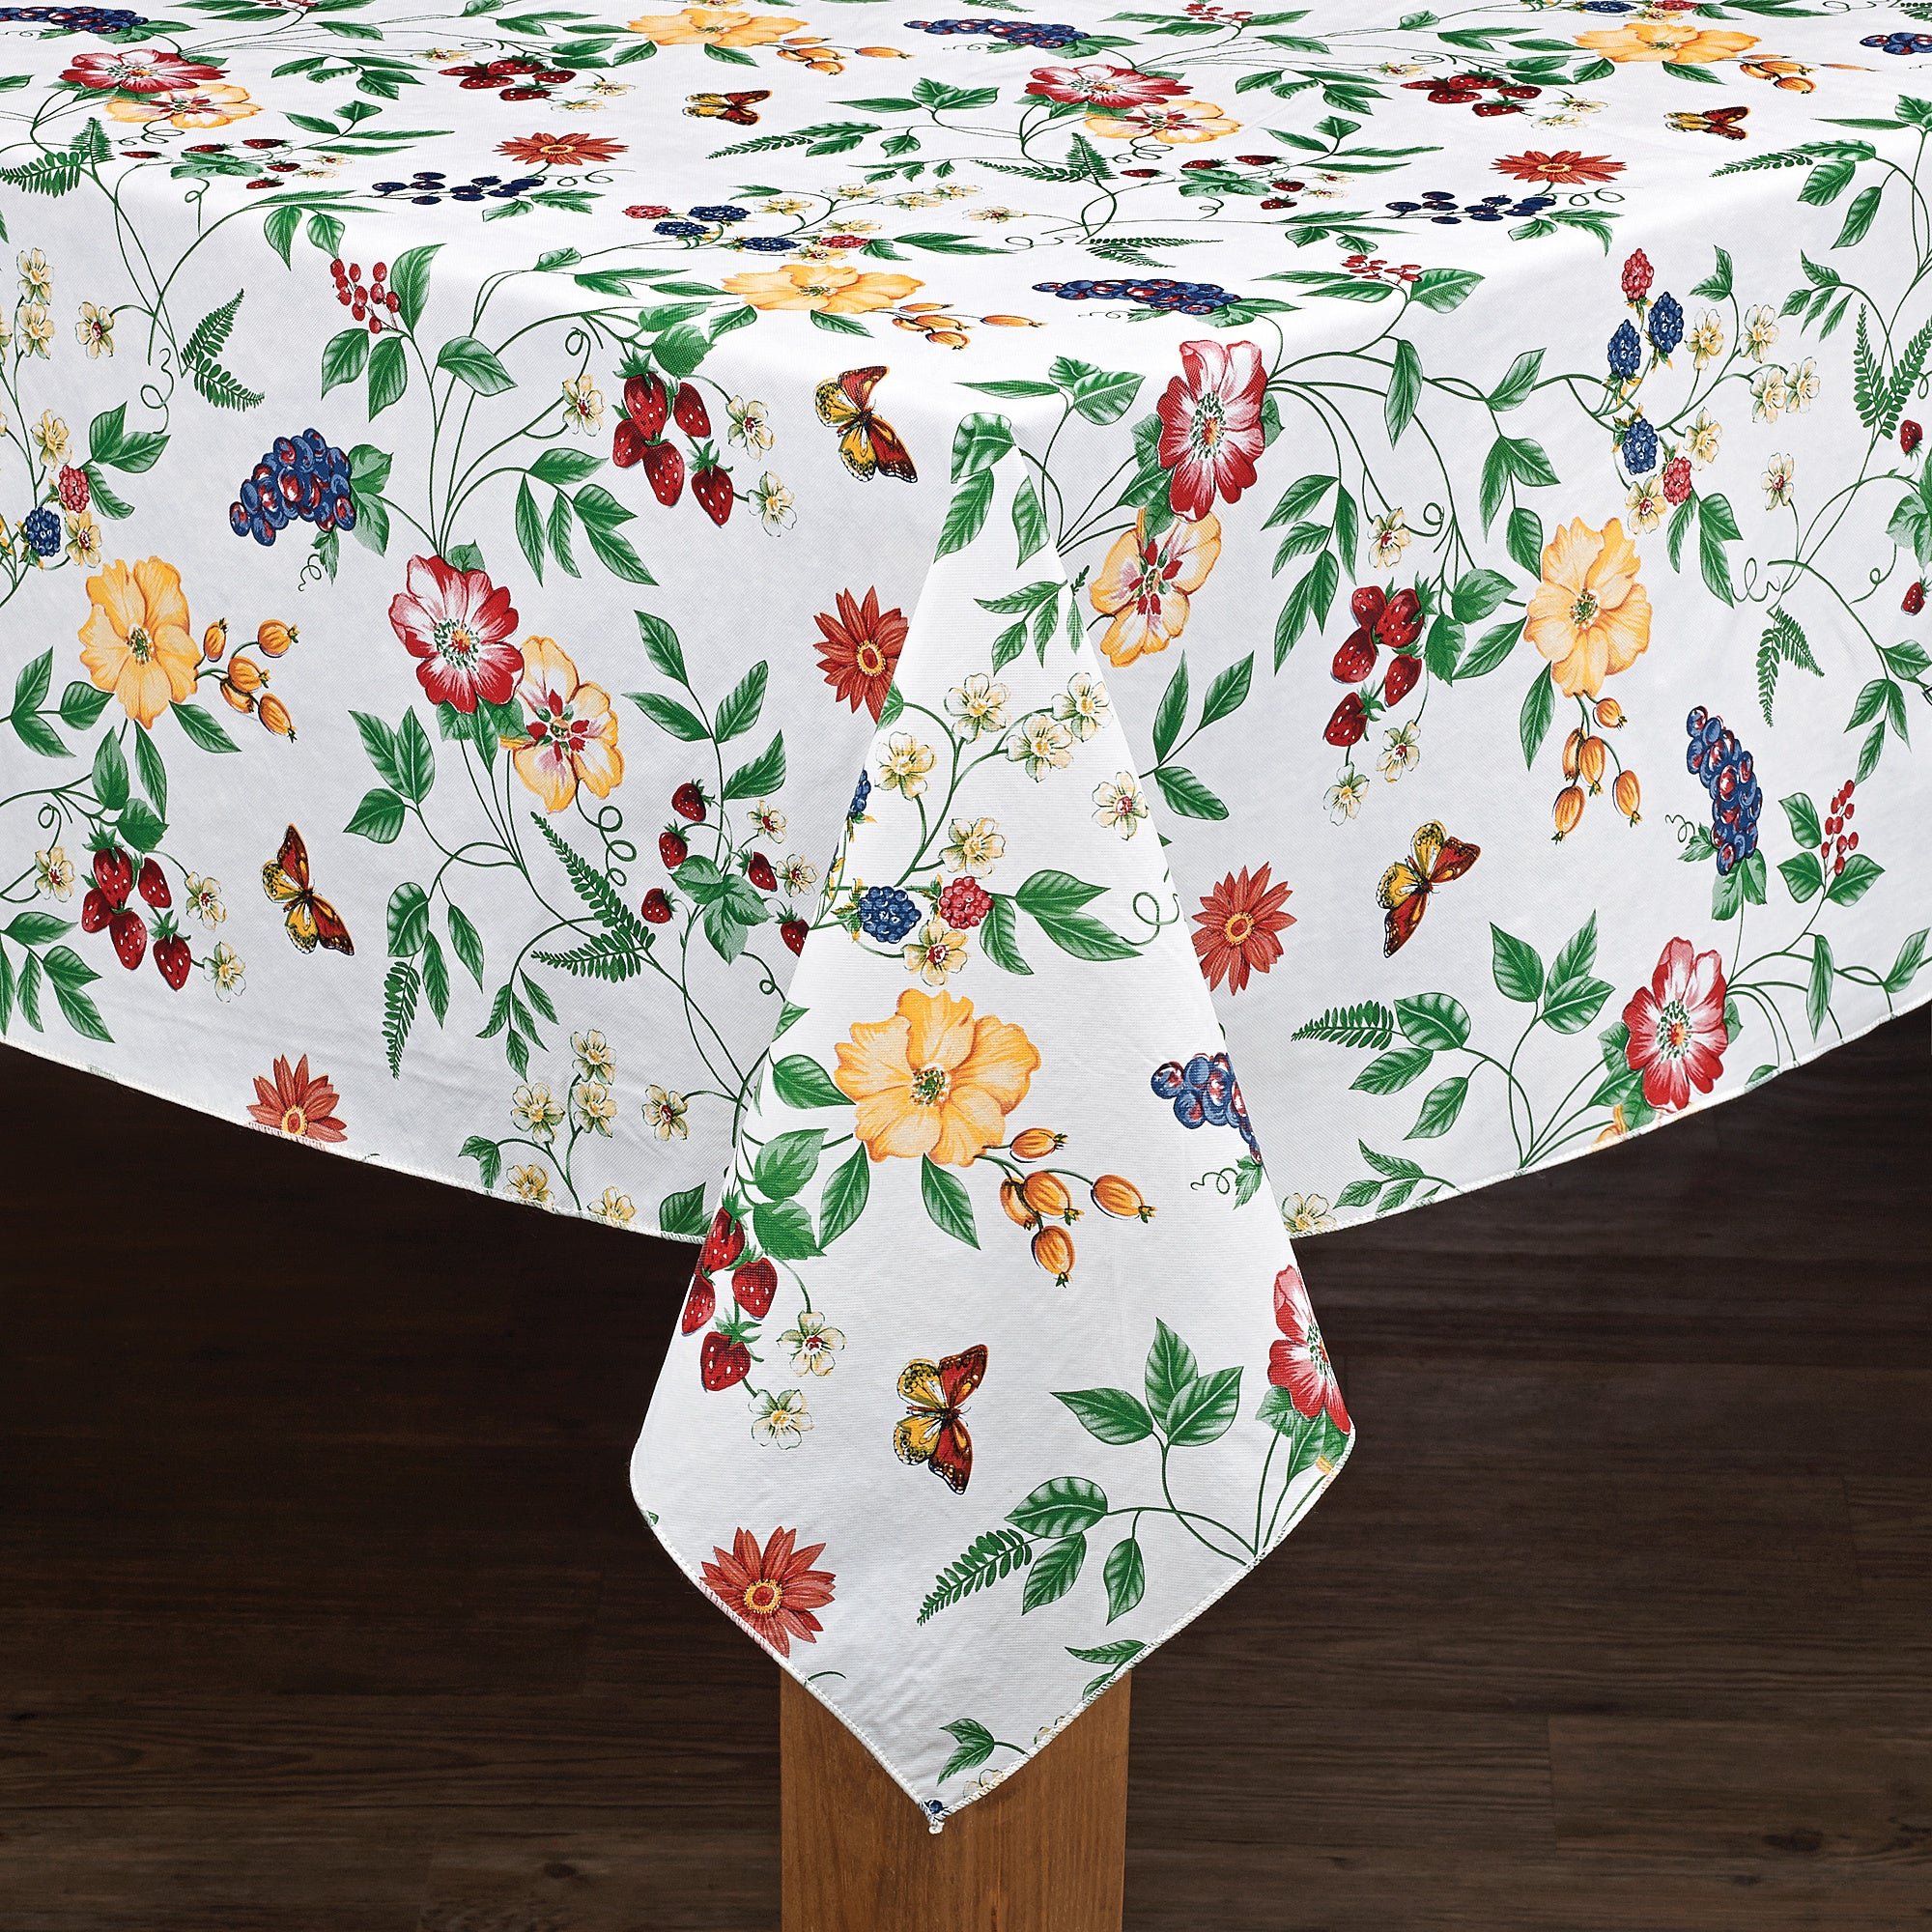 Enchanted Floral Garden Vinyl Tablecloth (60x104), Multi